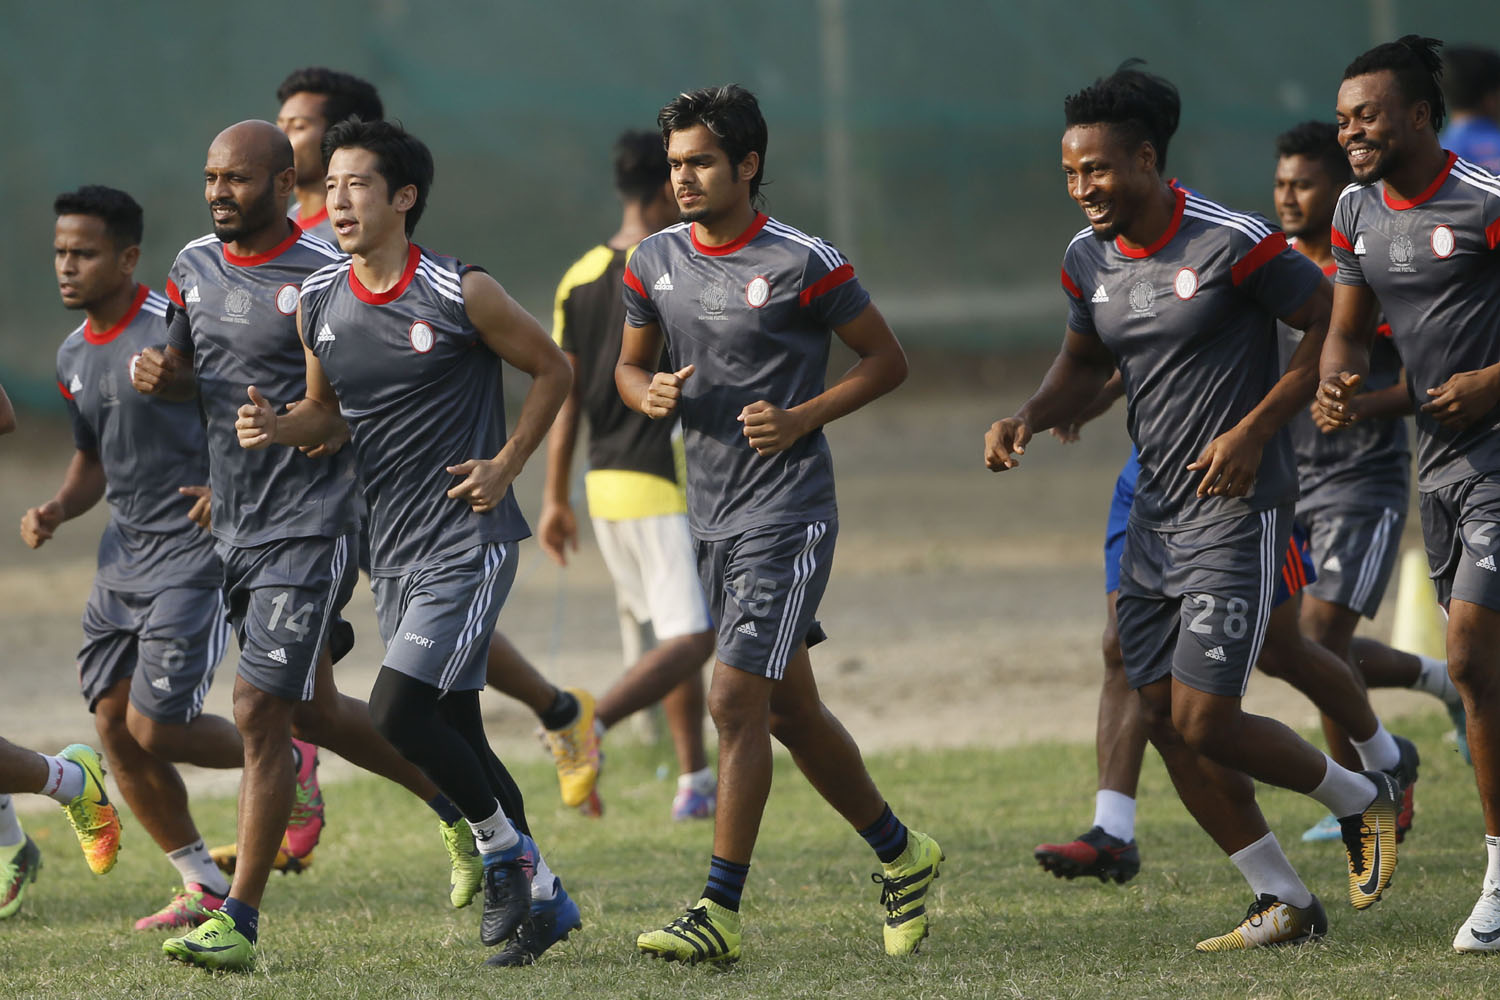 Members of Dhaka Abahani Limited during their practice session at the Abahani Ground on Tuesday.